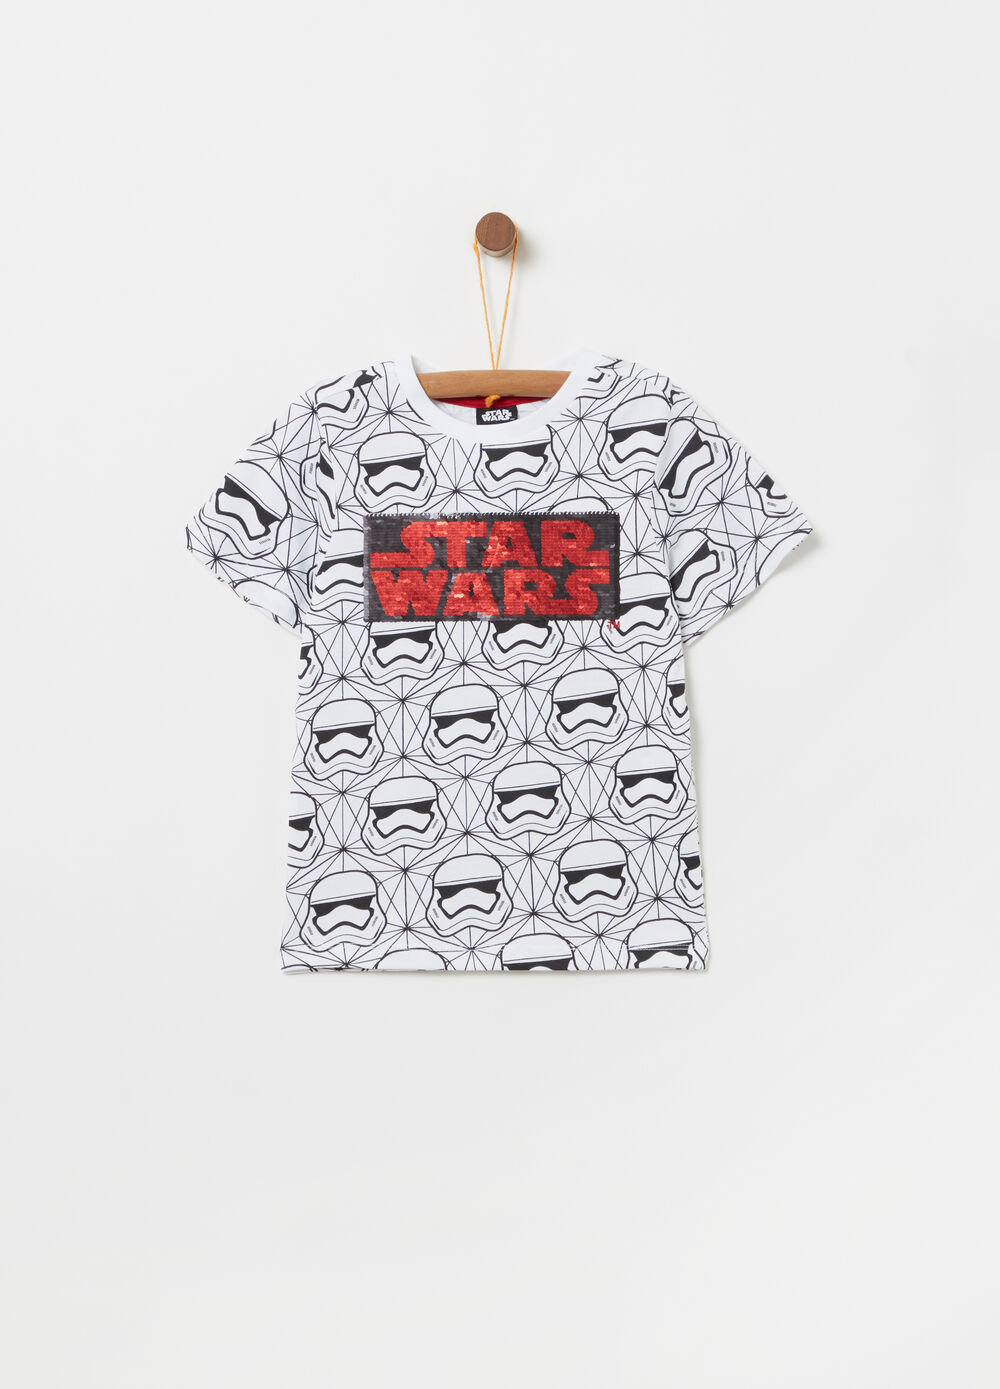 Star Wars T-shirt with reversible sequins